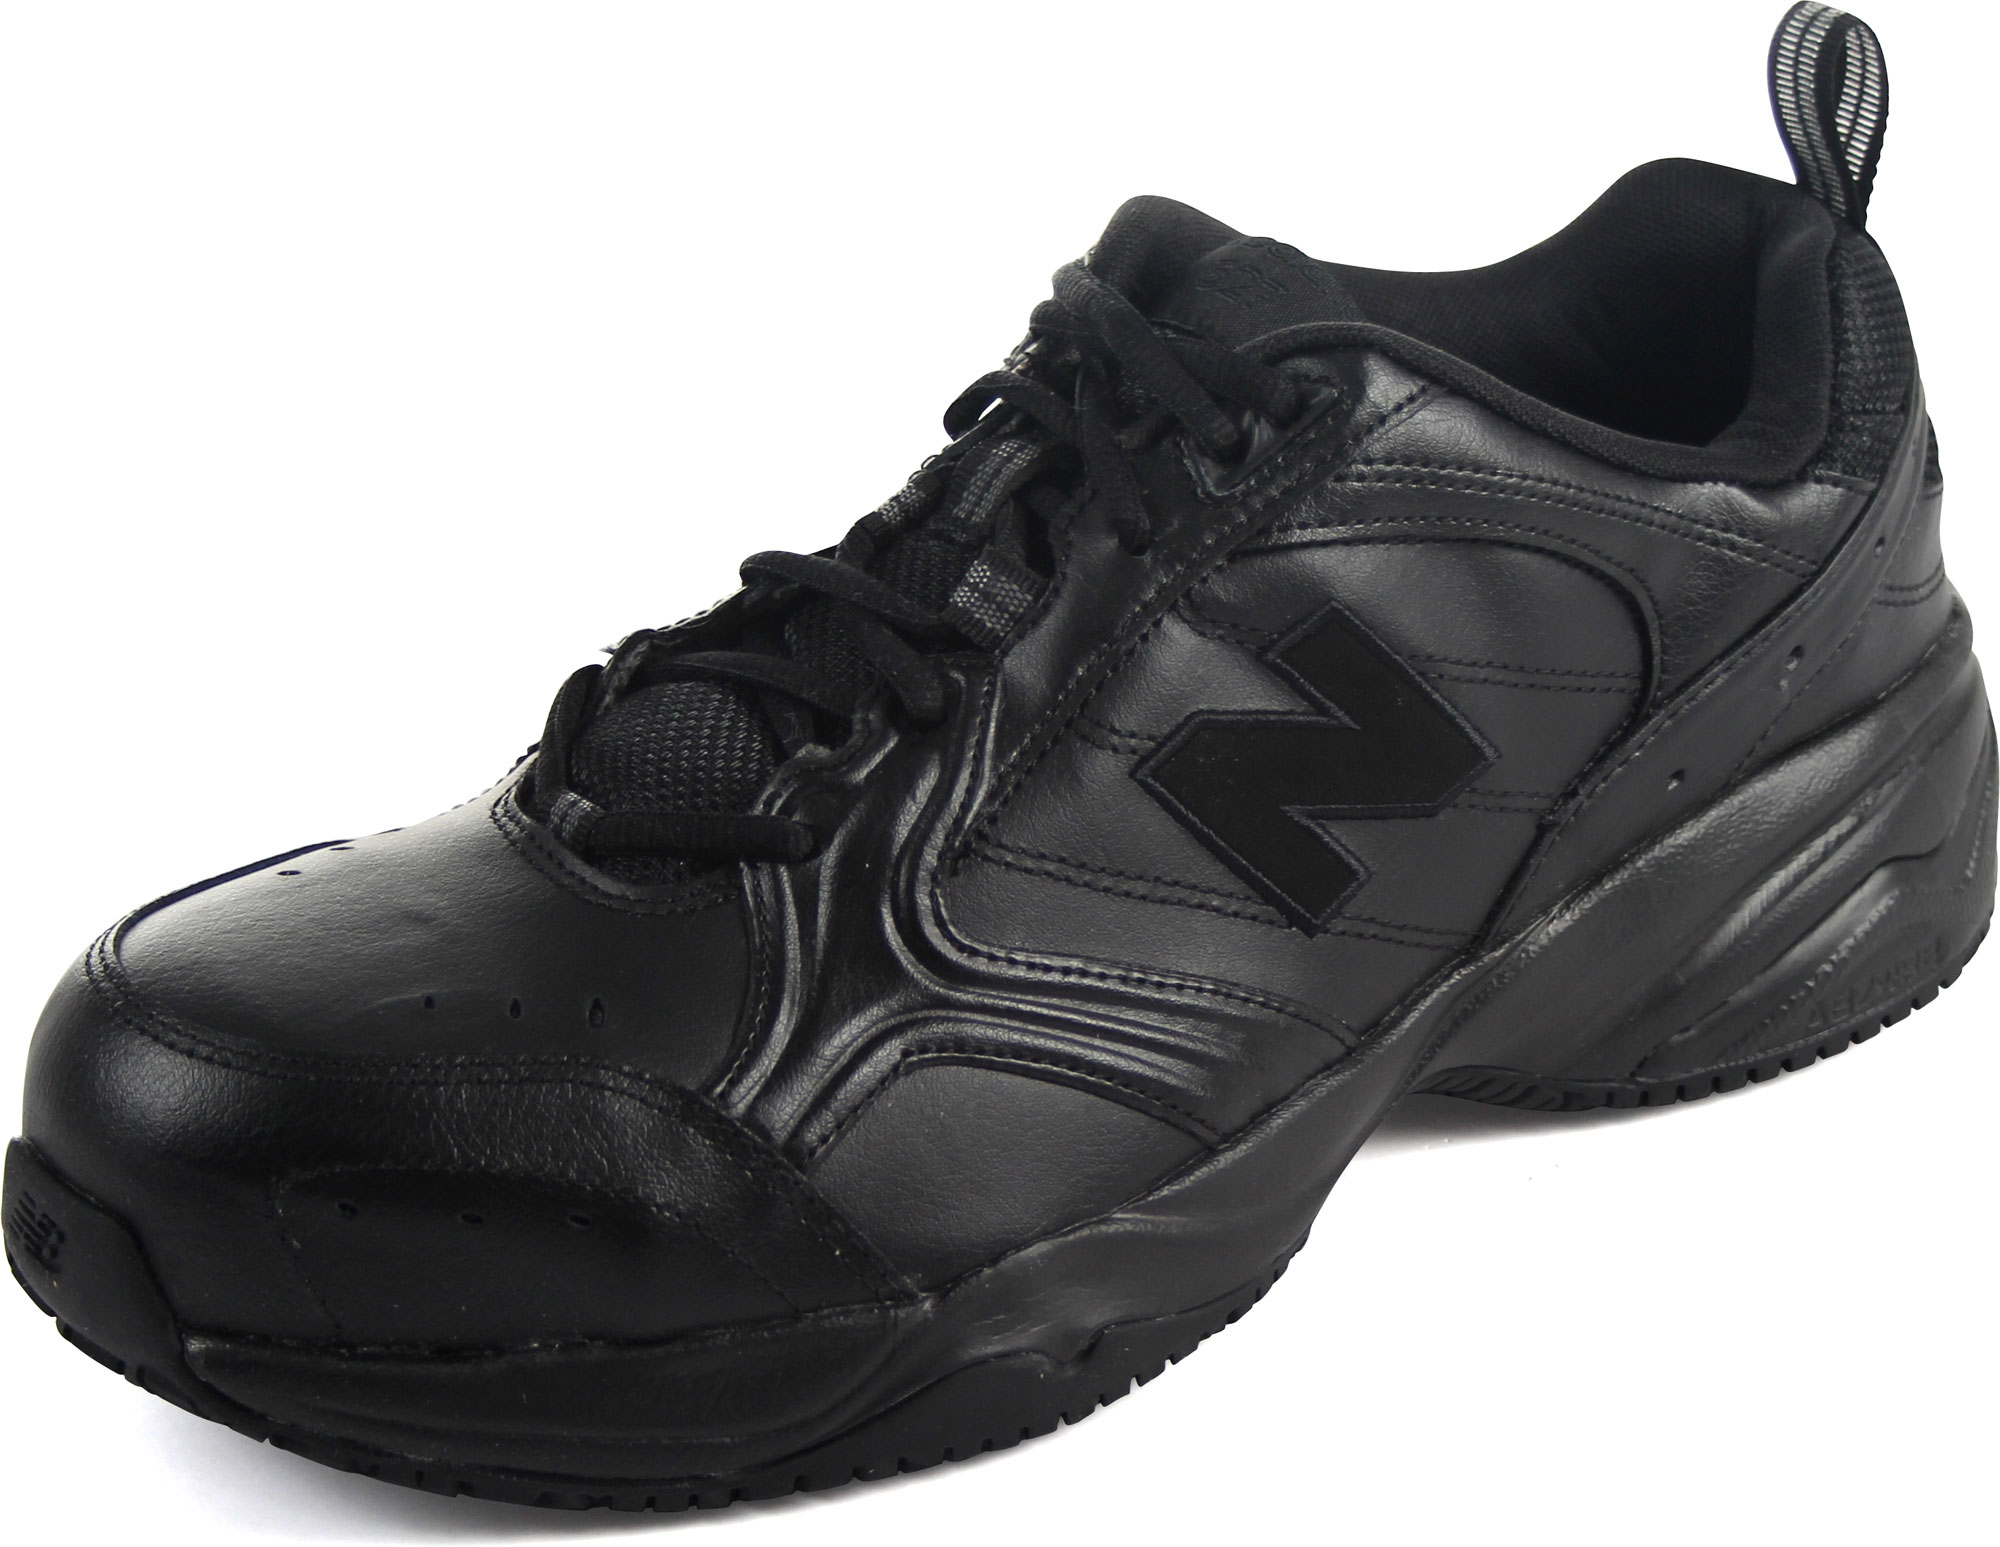 8c984ebe New Balance - Mens 627 Industrial Shoes